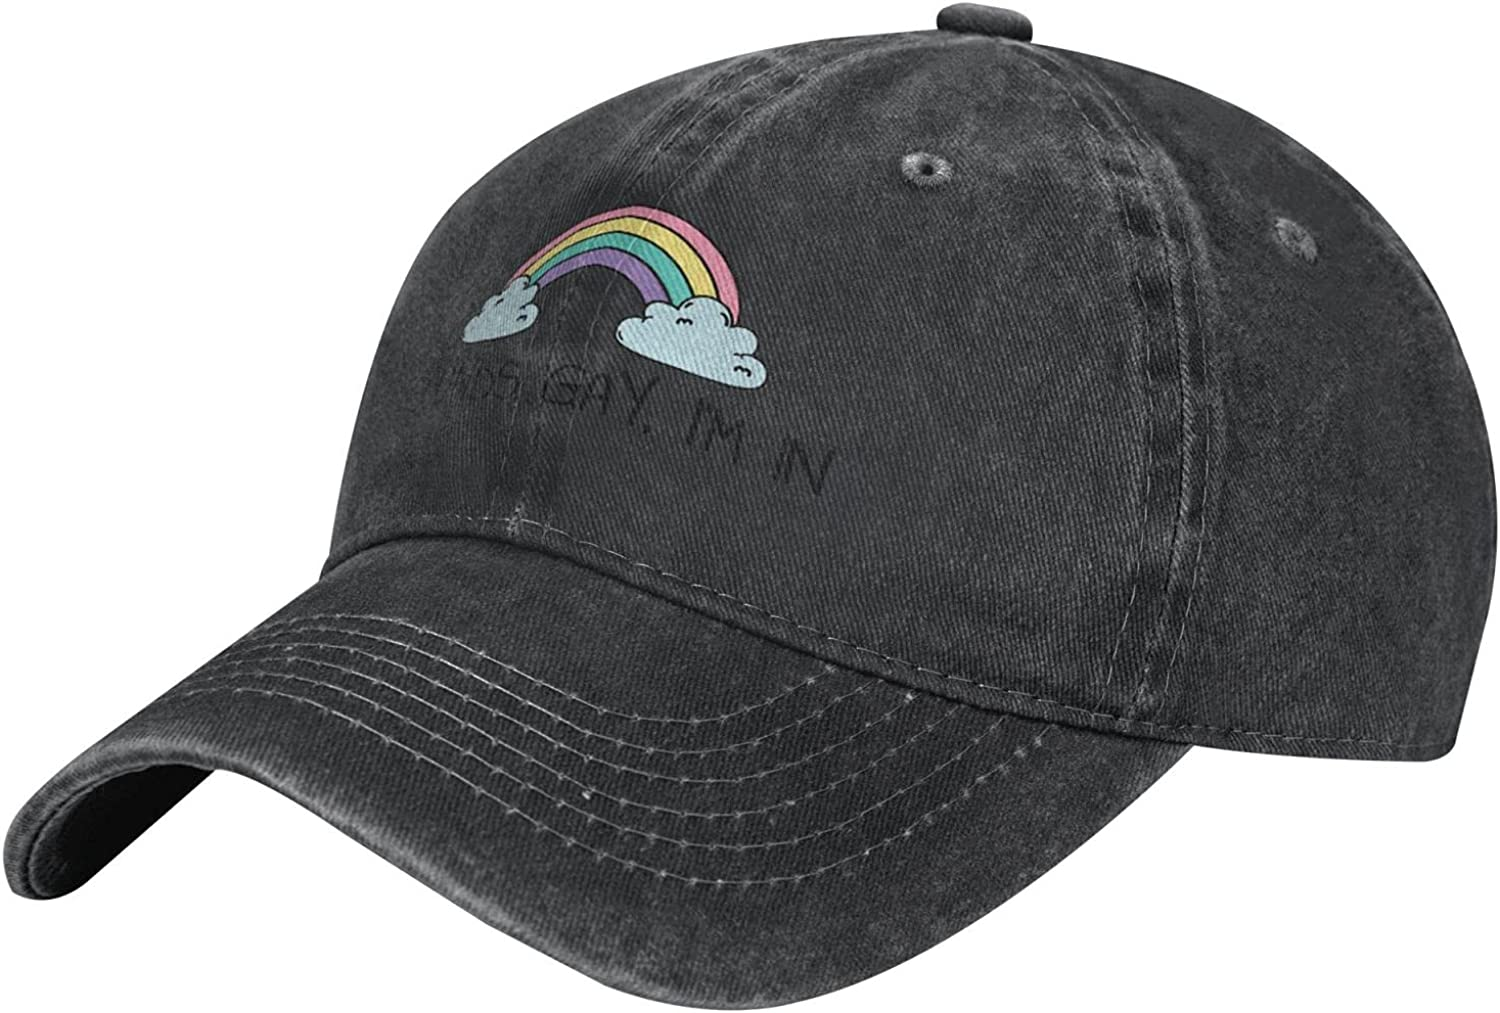 Sounds Gay I'm in Unisex Adult Fashion Outdoor Cowboy Caps Adjustable Baseball Cap